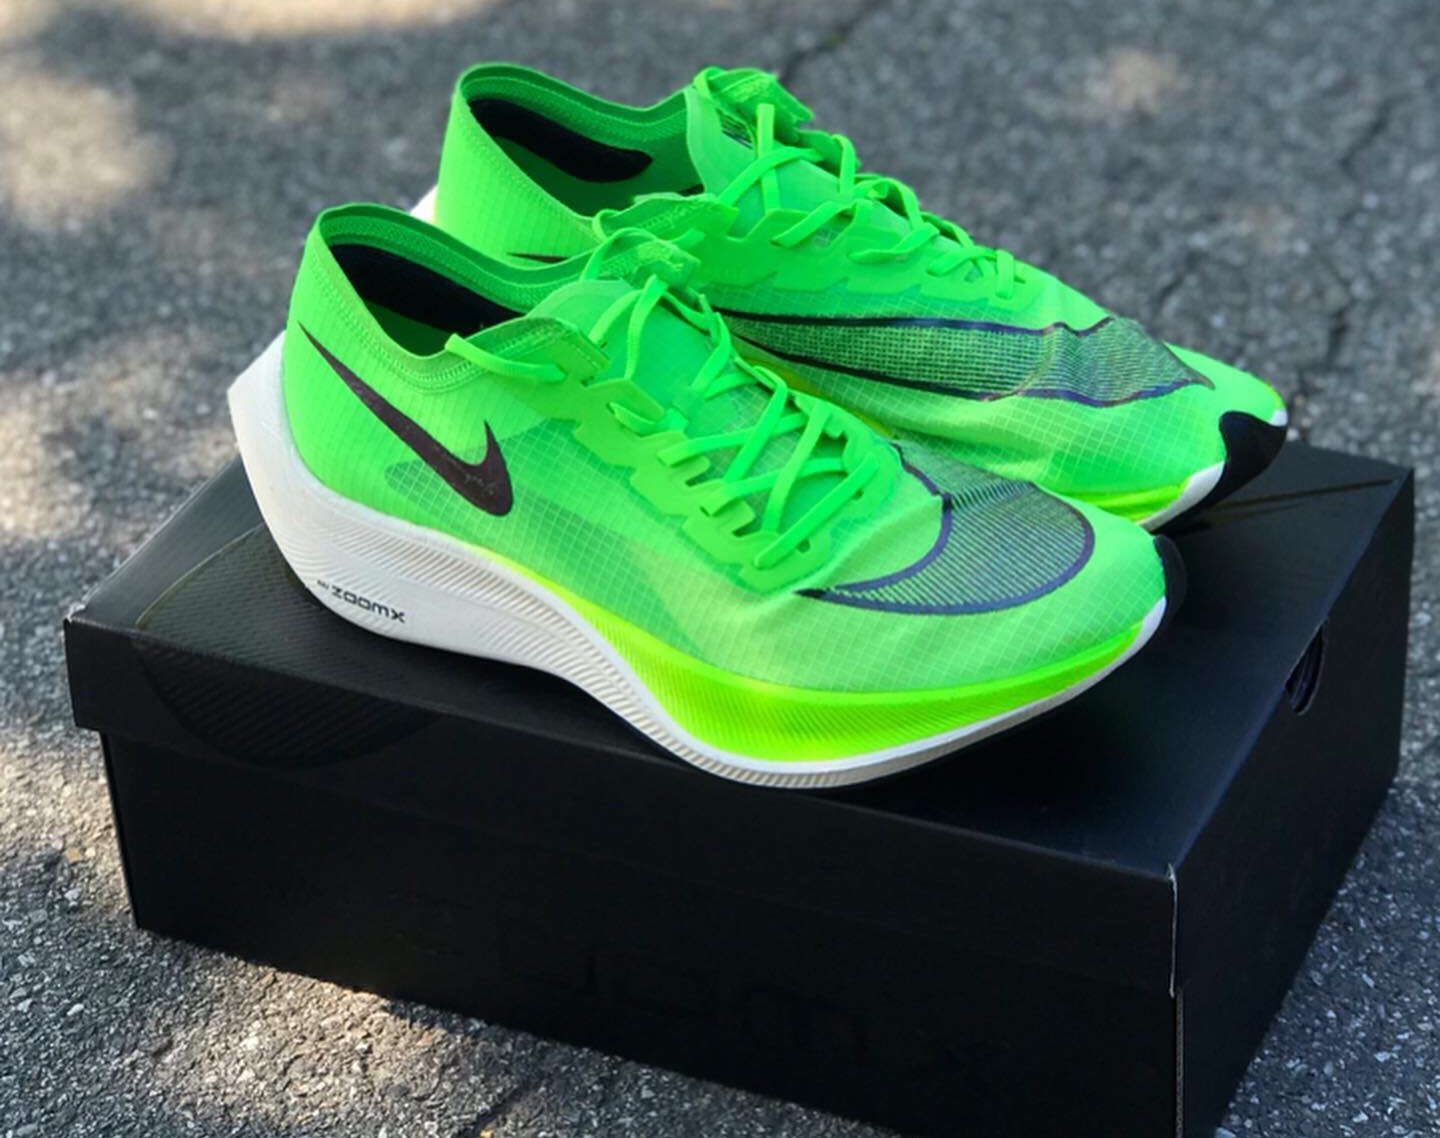 Test_Nike_Vaporfly_Next%_frenchfuel_1